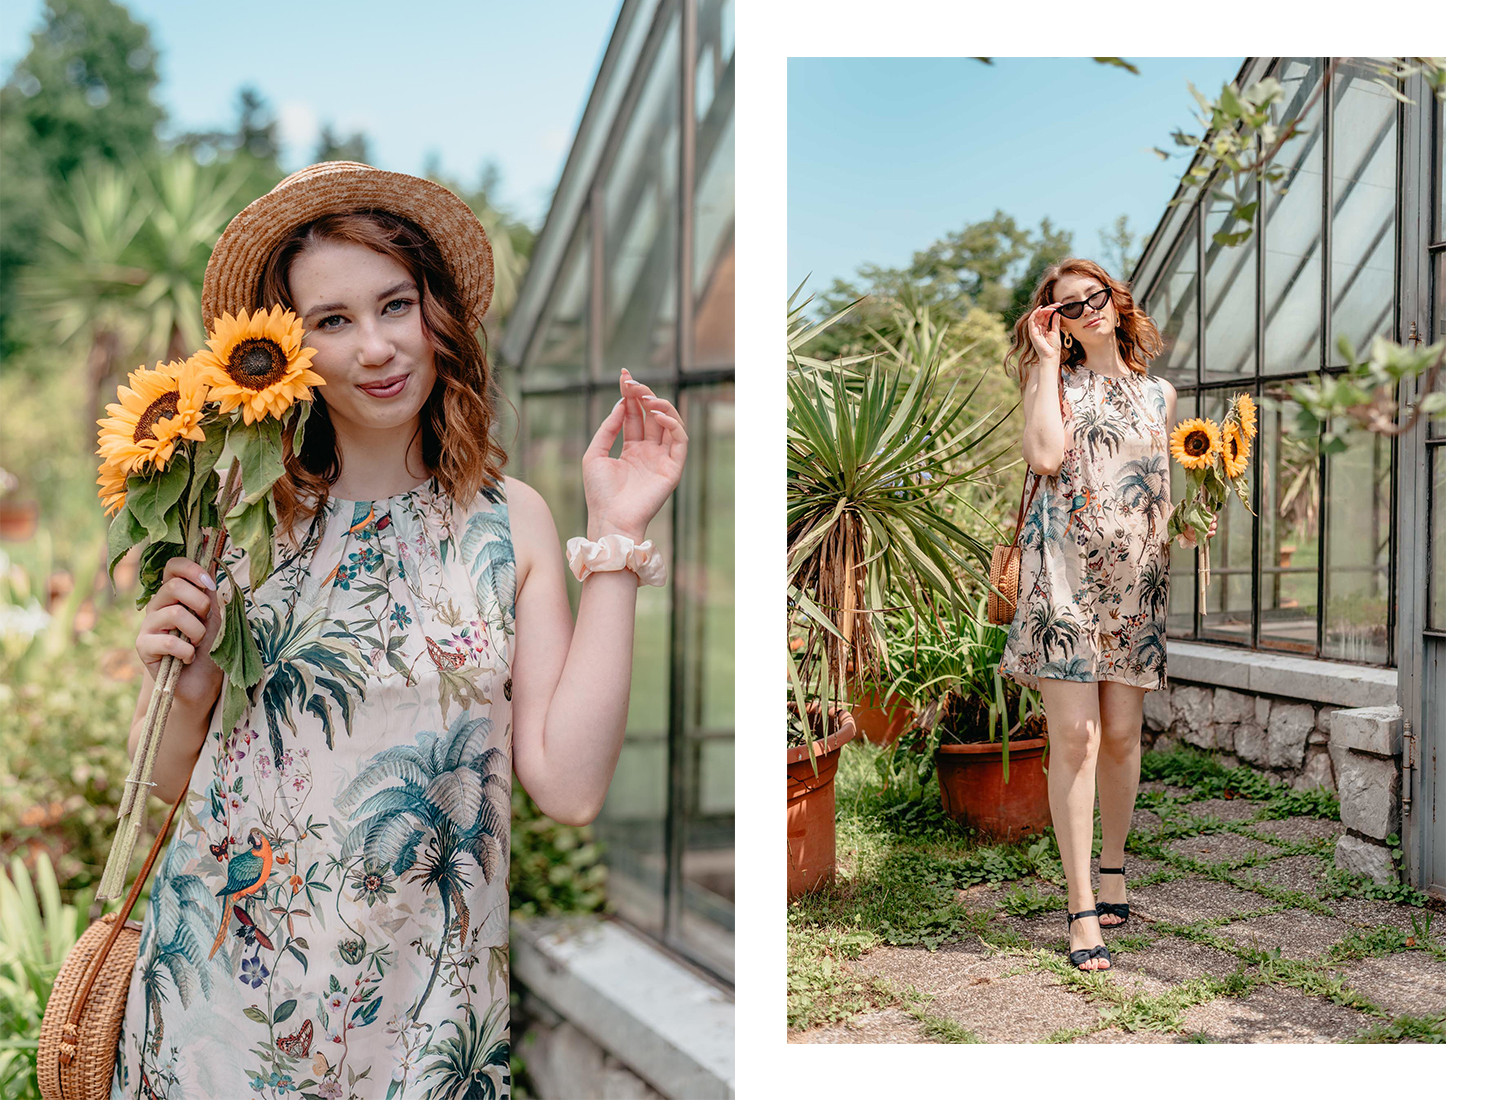 Deichmann-sandals-Zalabell-summer-outfit-HM-tropical-dress